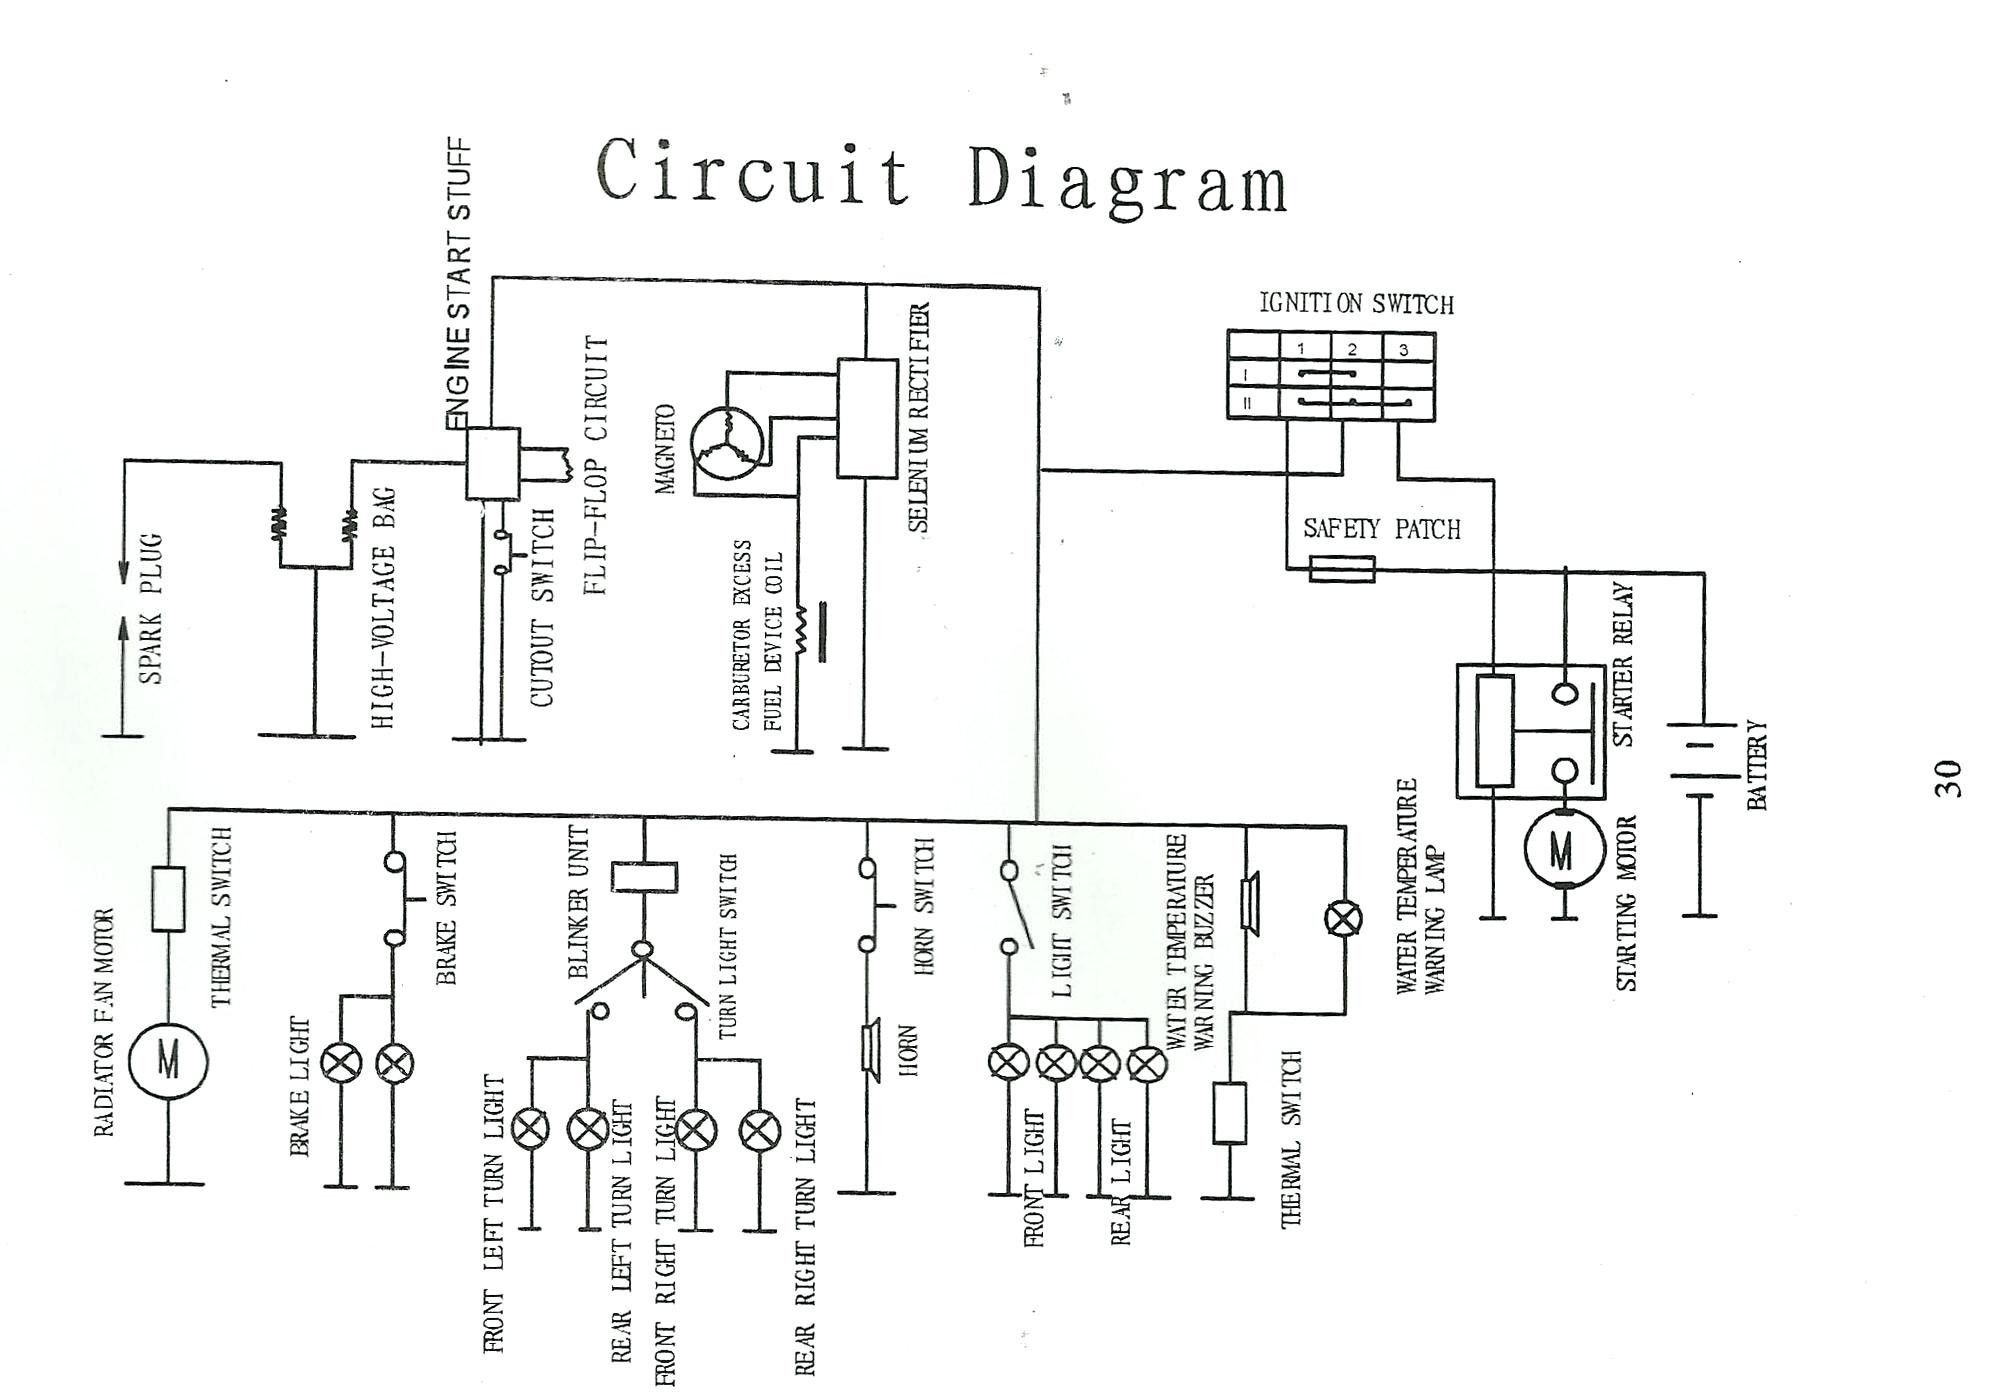 New Wiring Diagram Draw Diagram Diagramtemplate